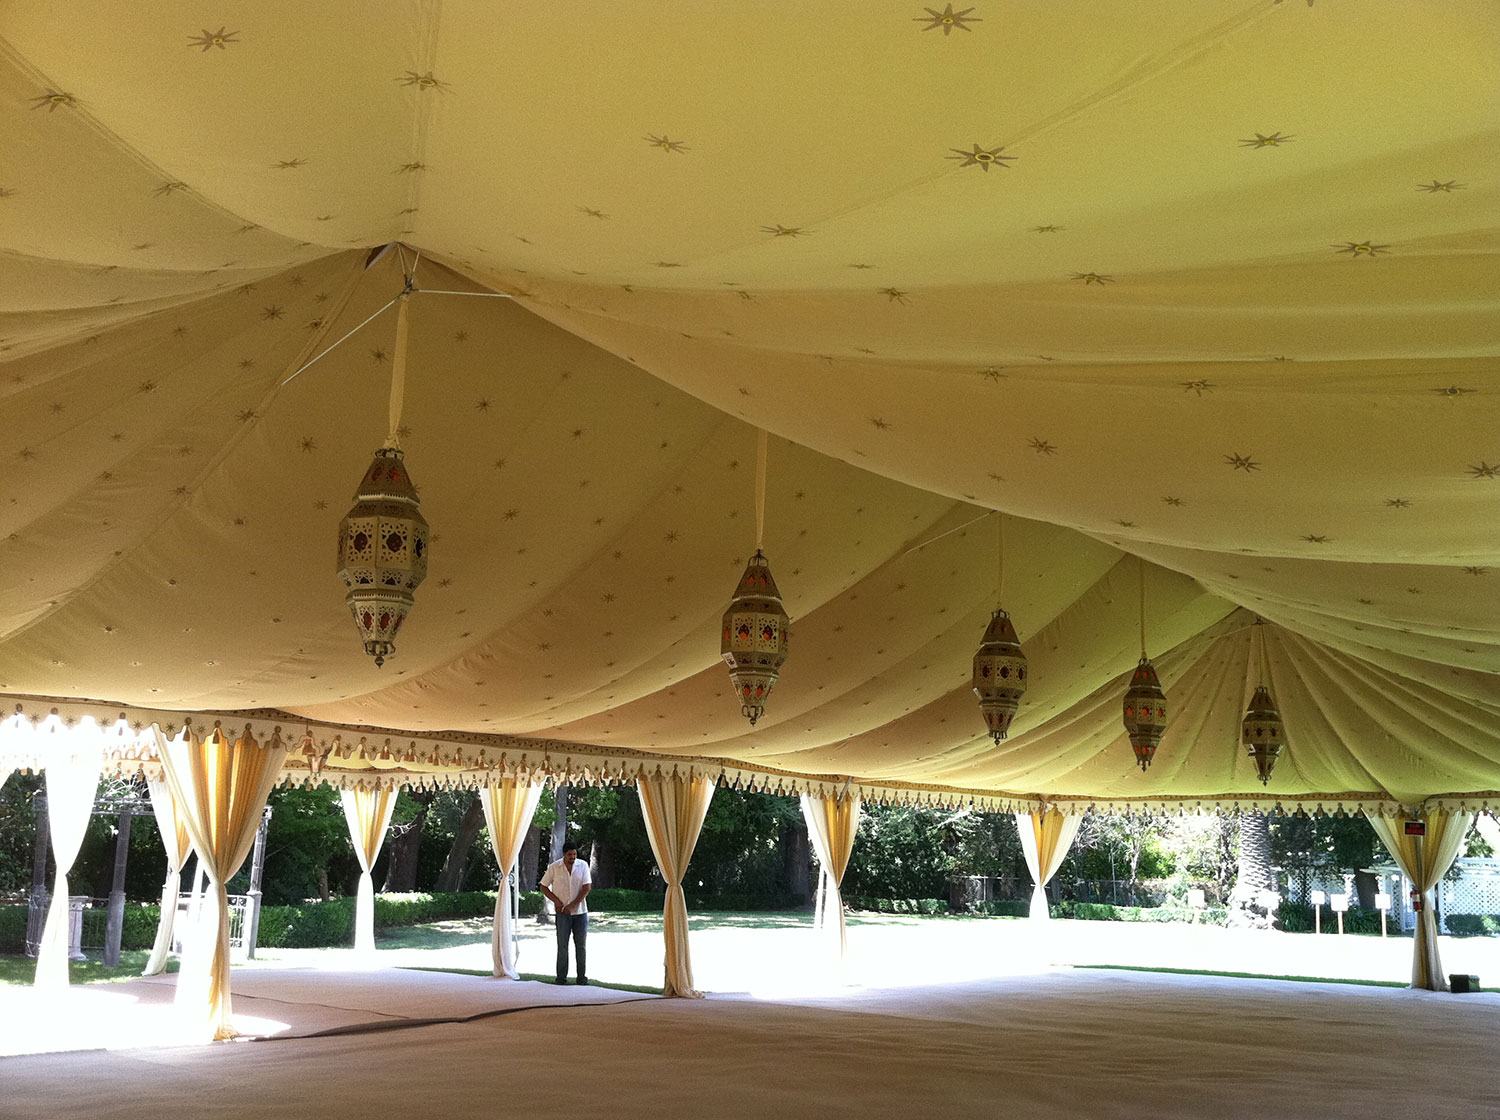 raj-tents-frame-tent-linings-honeyglow-lamps-empty.jpg